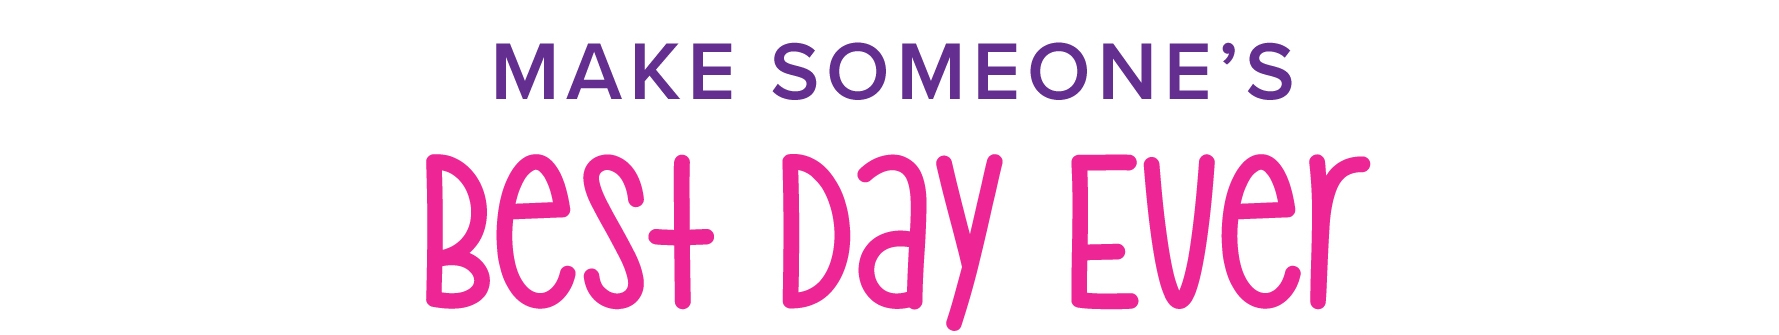 Surprise Gift Co. : Make Someone's Best Day Ever